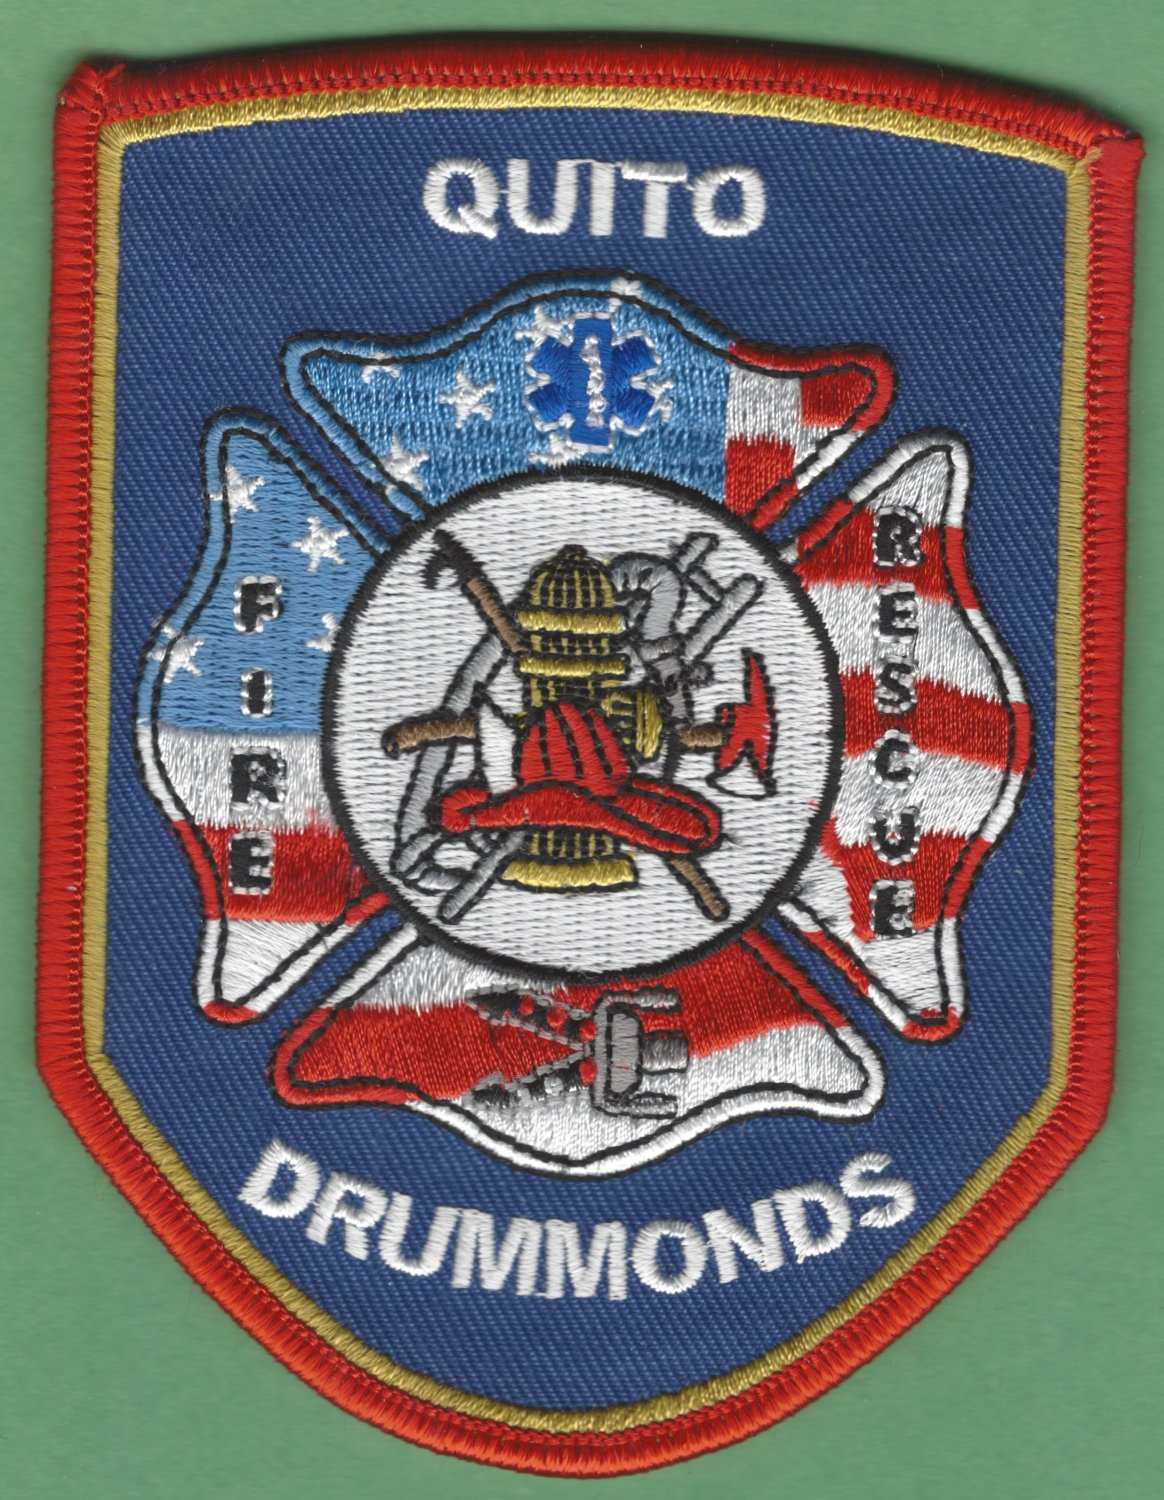 QUITO - DRUMMONDS TENNESSEE FIRE RESCUE PATCH